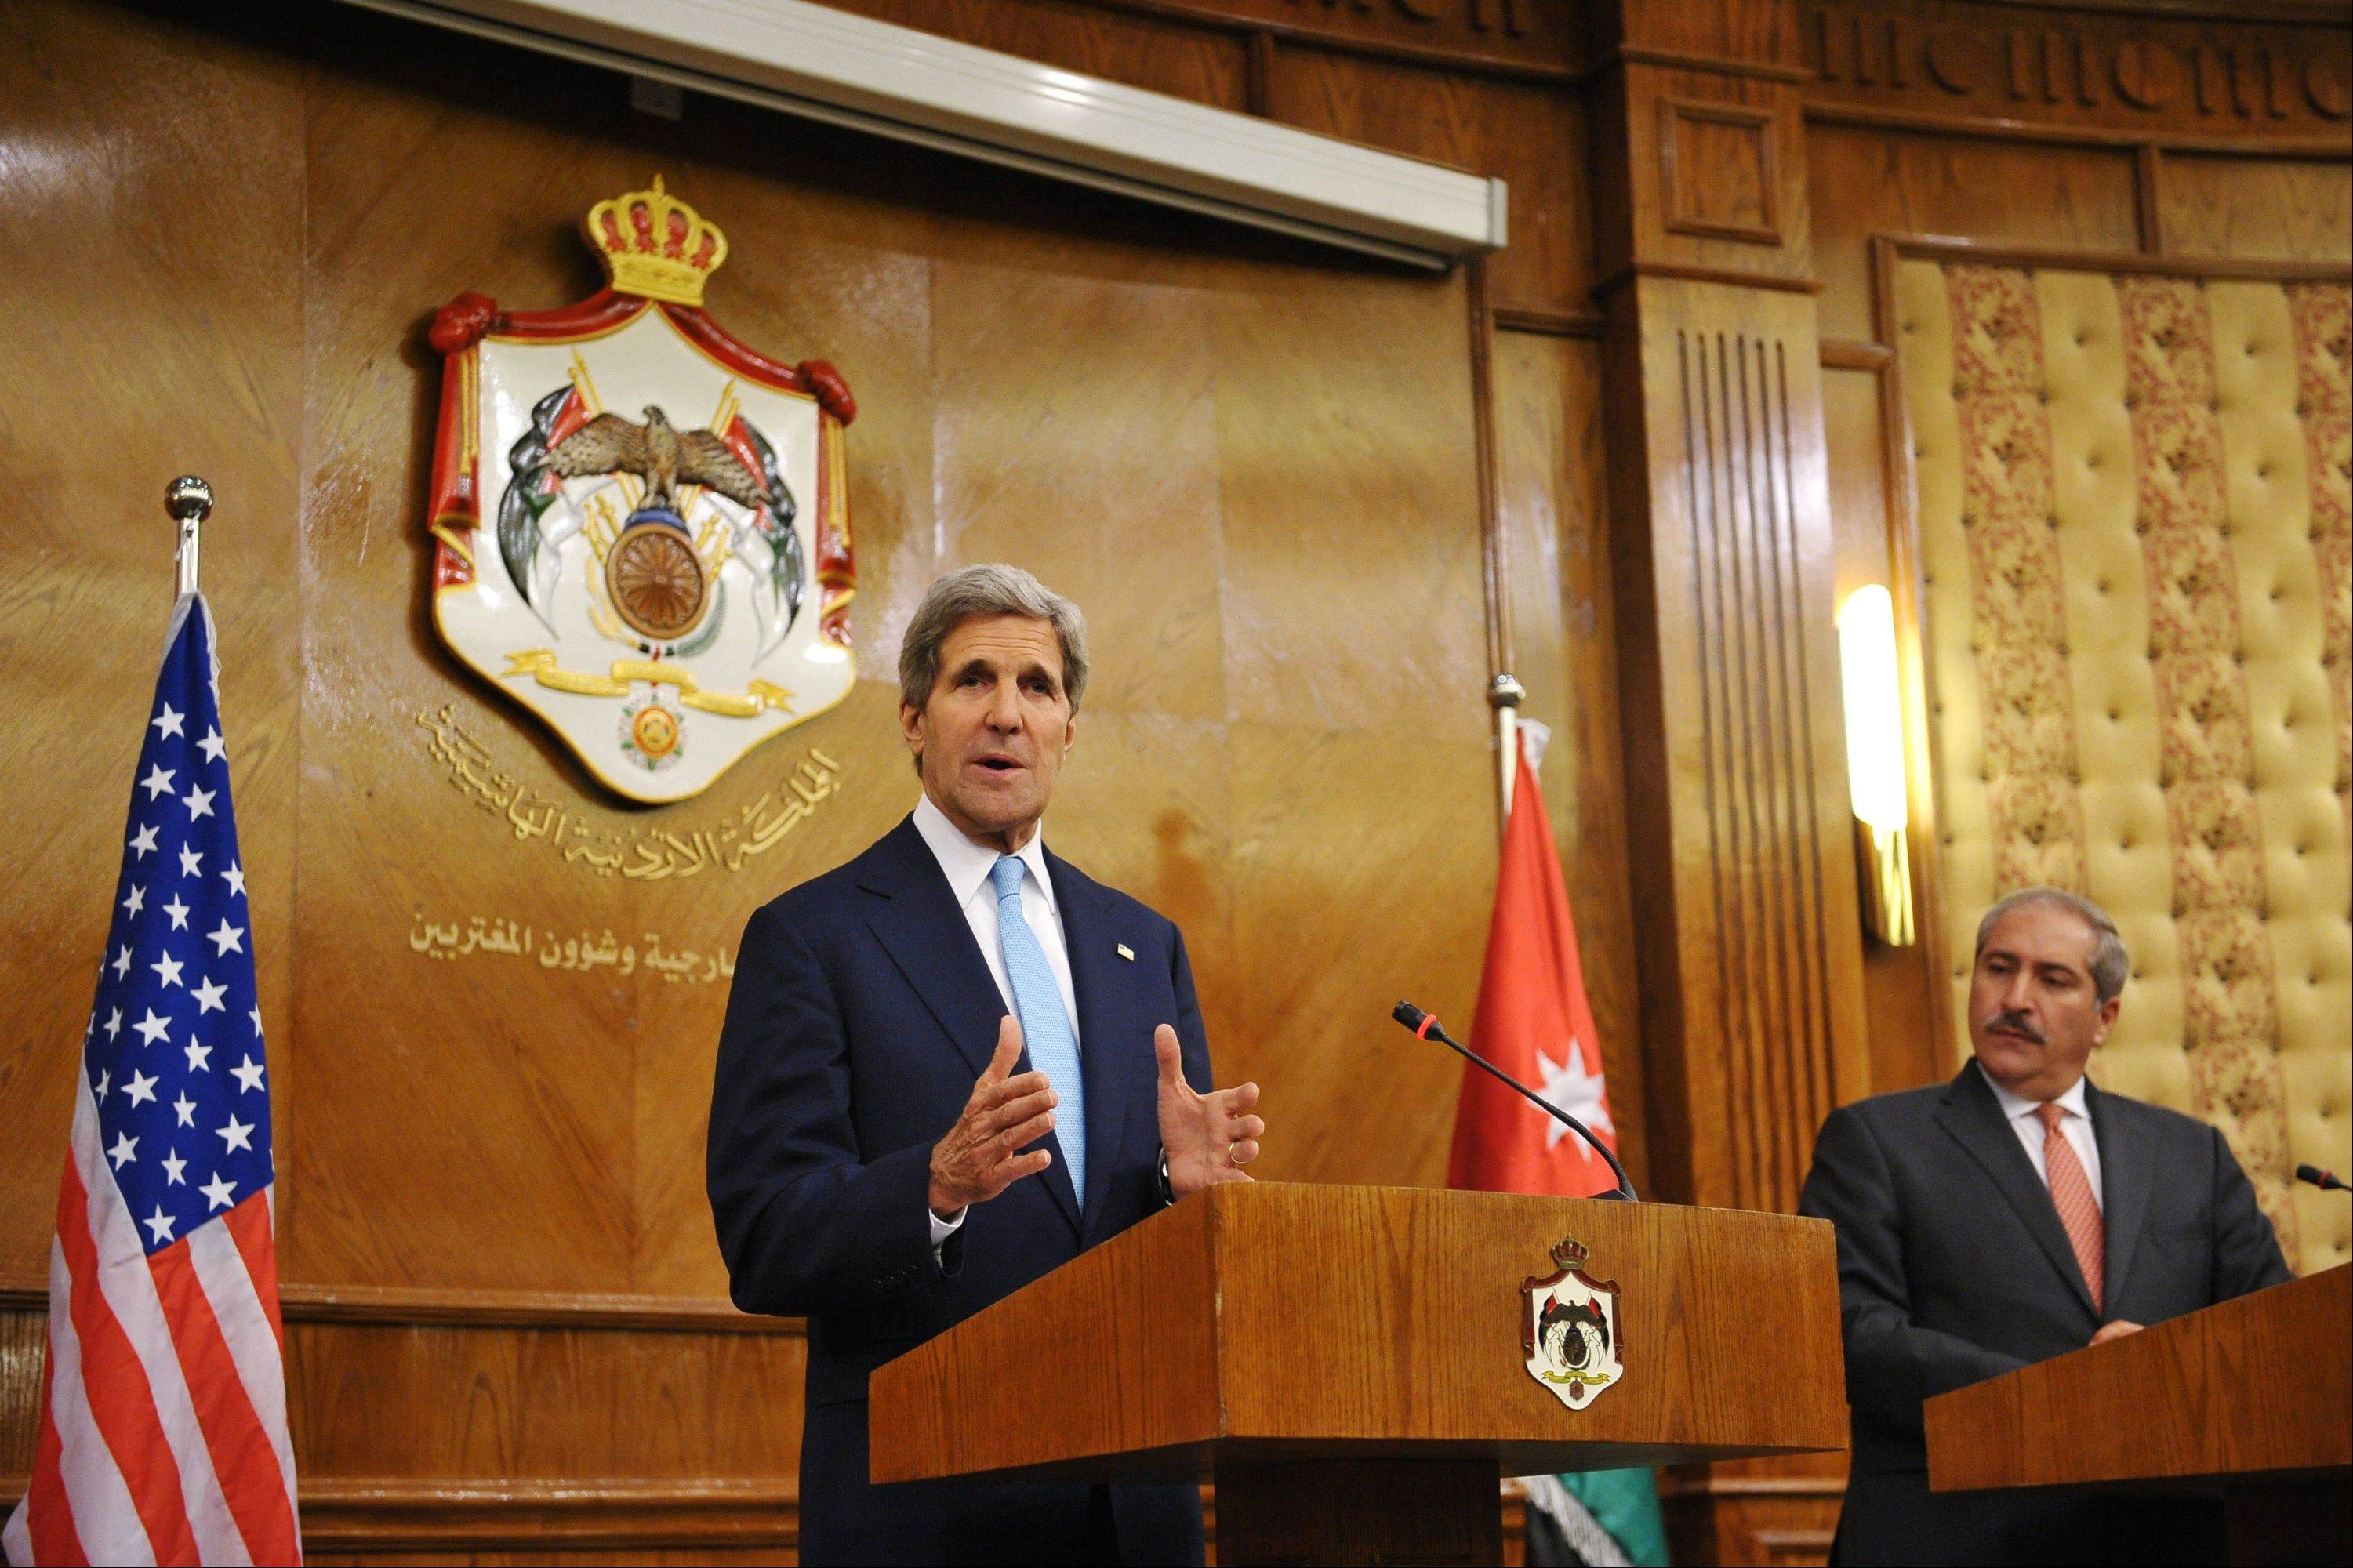 U.S. Secretary of State John Kerry speaks during a joint news conference with Jordan�s Foreign Minister Nasser Judeh on Wednesday, July 17, 2013 at the Ministry of Foreign Affairs in the Jordanian capital, Amman. Kerry won Arab League backing Wednesday for his effort to restart Israeli-Palestinian peace talks, raising hopes for a quick resumption in the stalled negotiations.